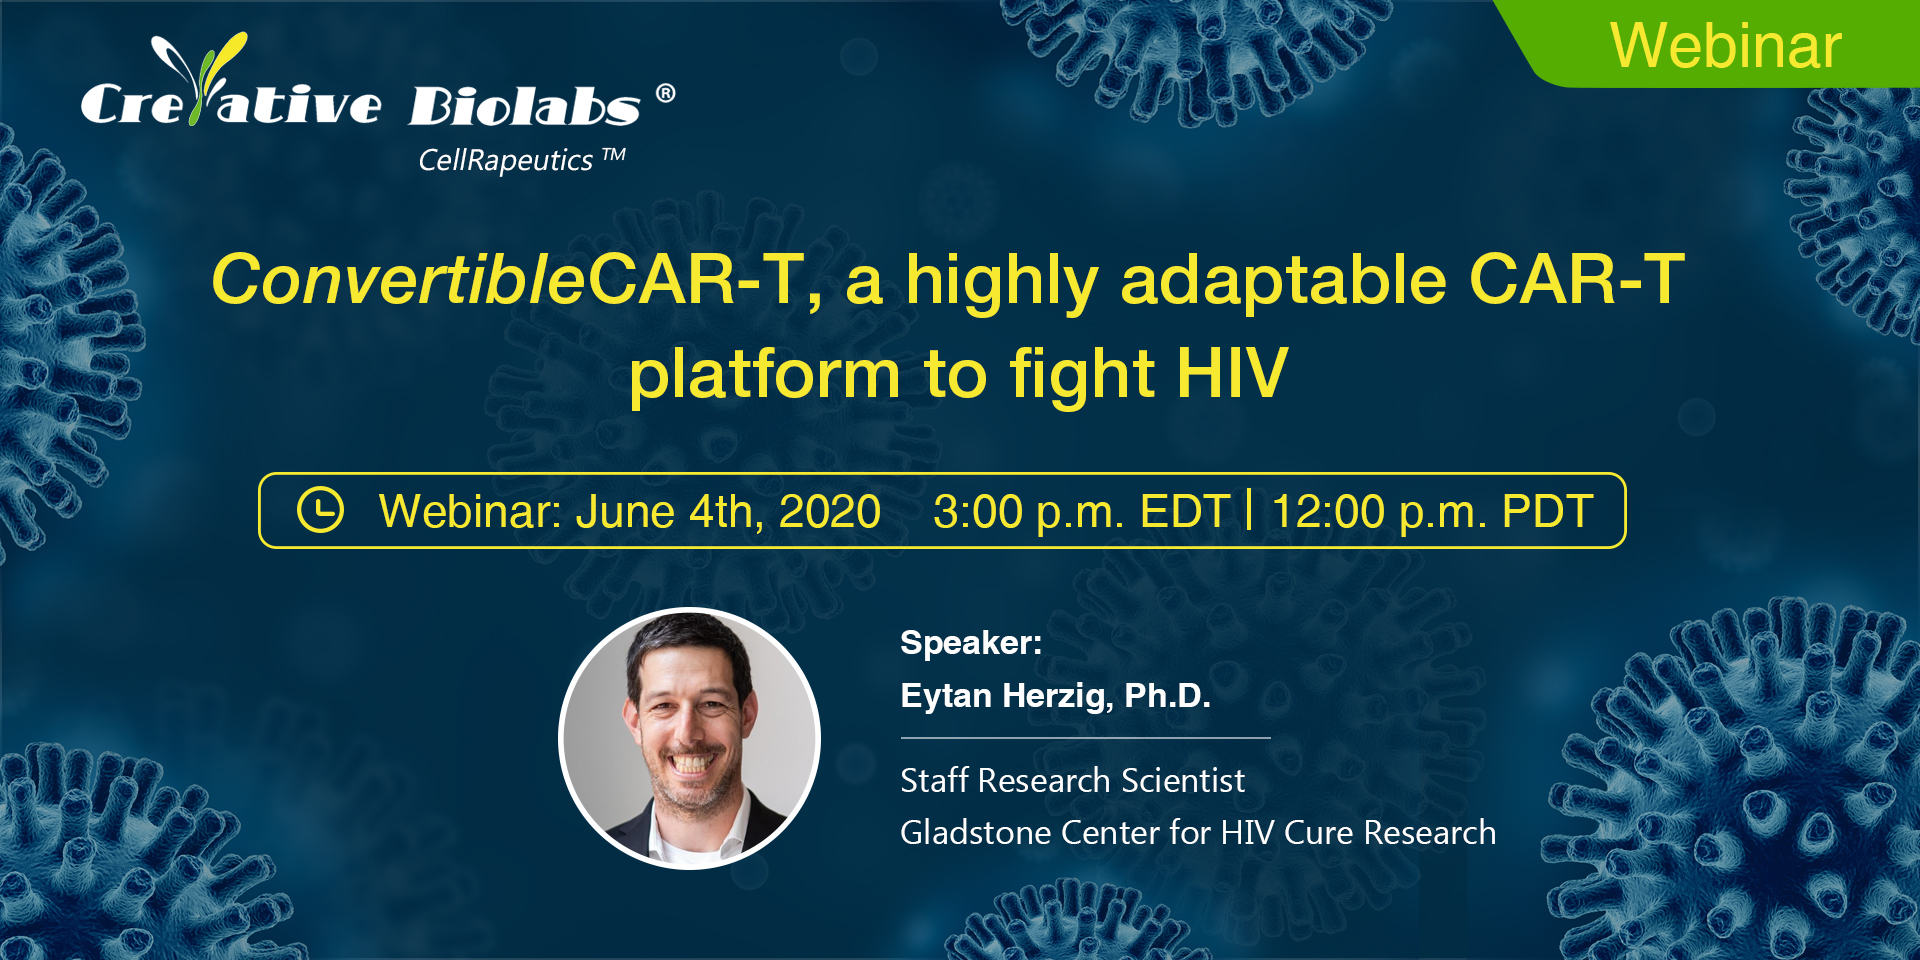 Update: Registration for Creative Biolabs' Webinar About ConvertibleCAR-T Is Now Opened